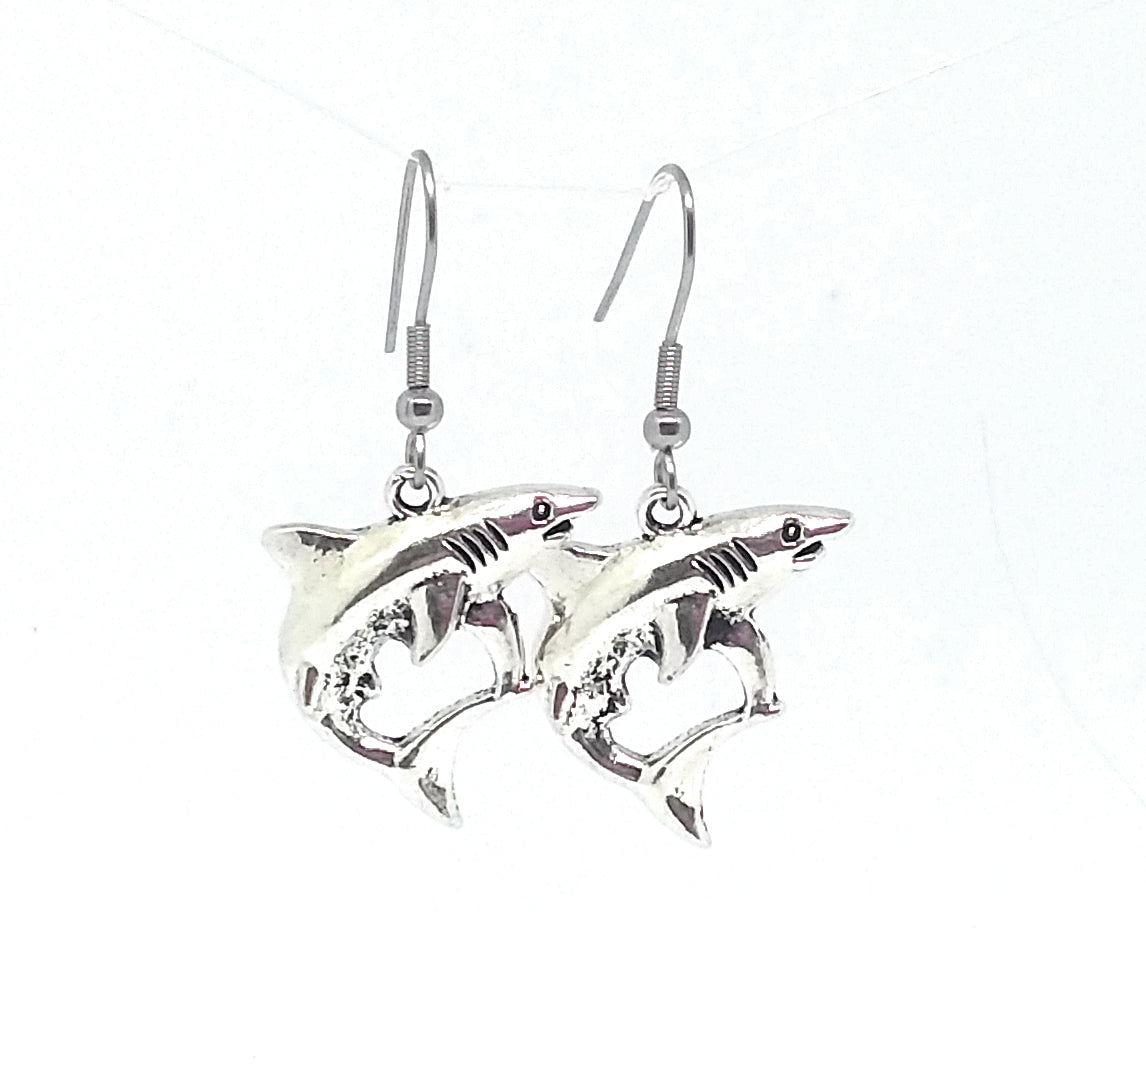 Shark Dangle Earrings with Stainless Steel Ear Wires